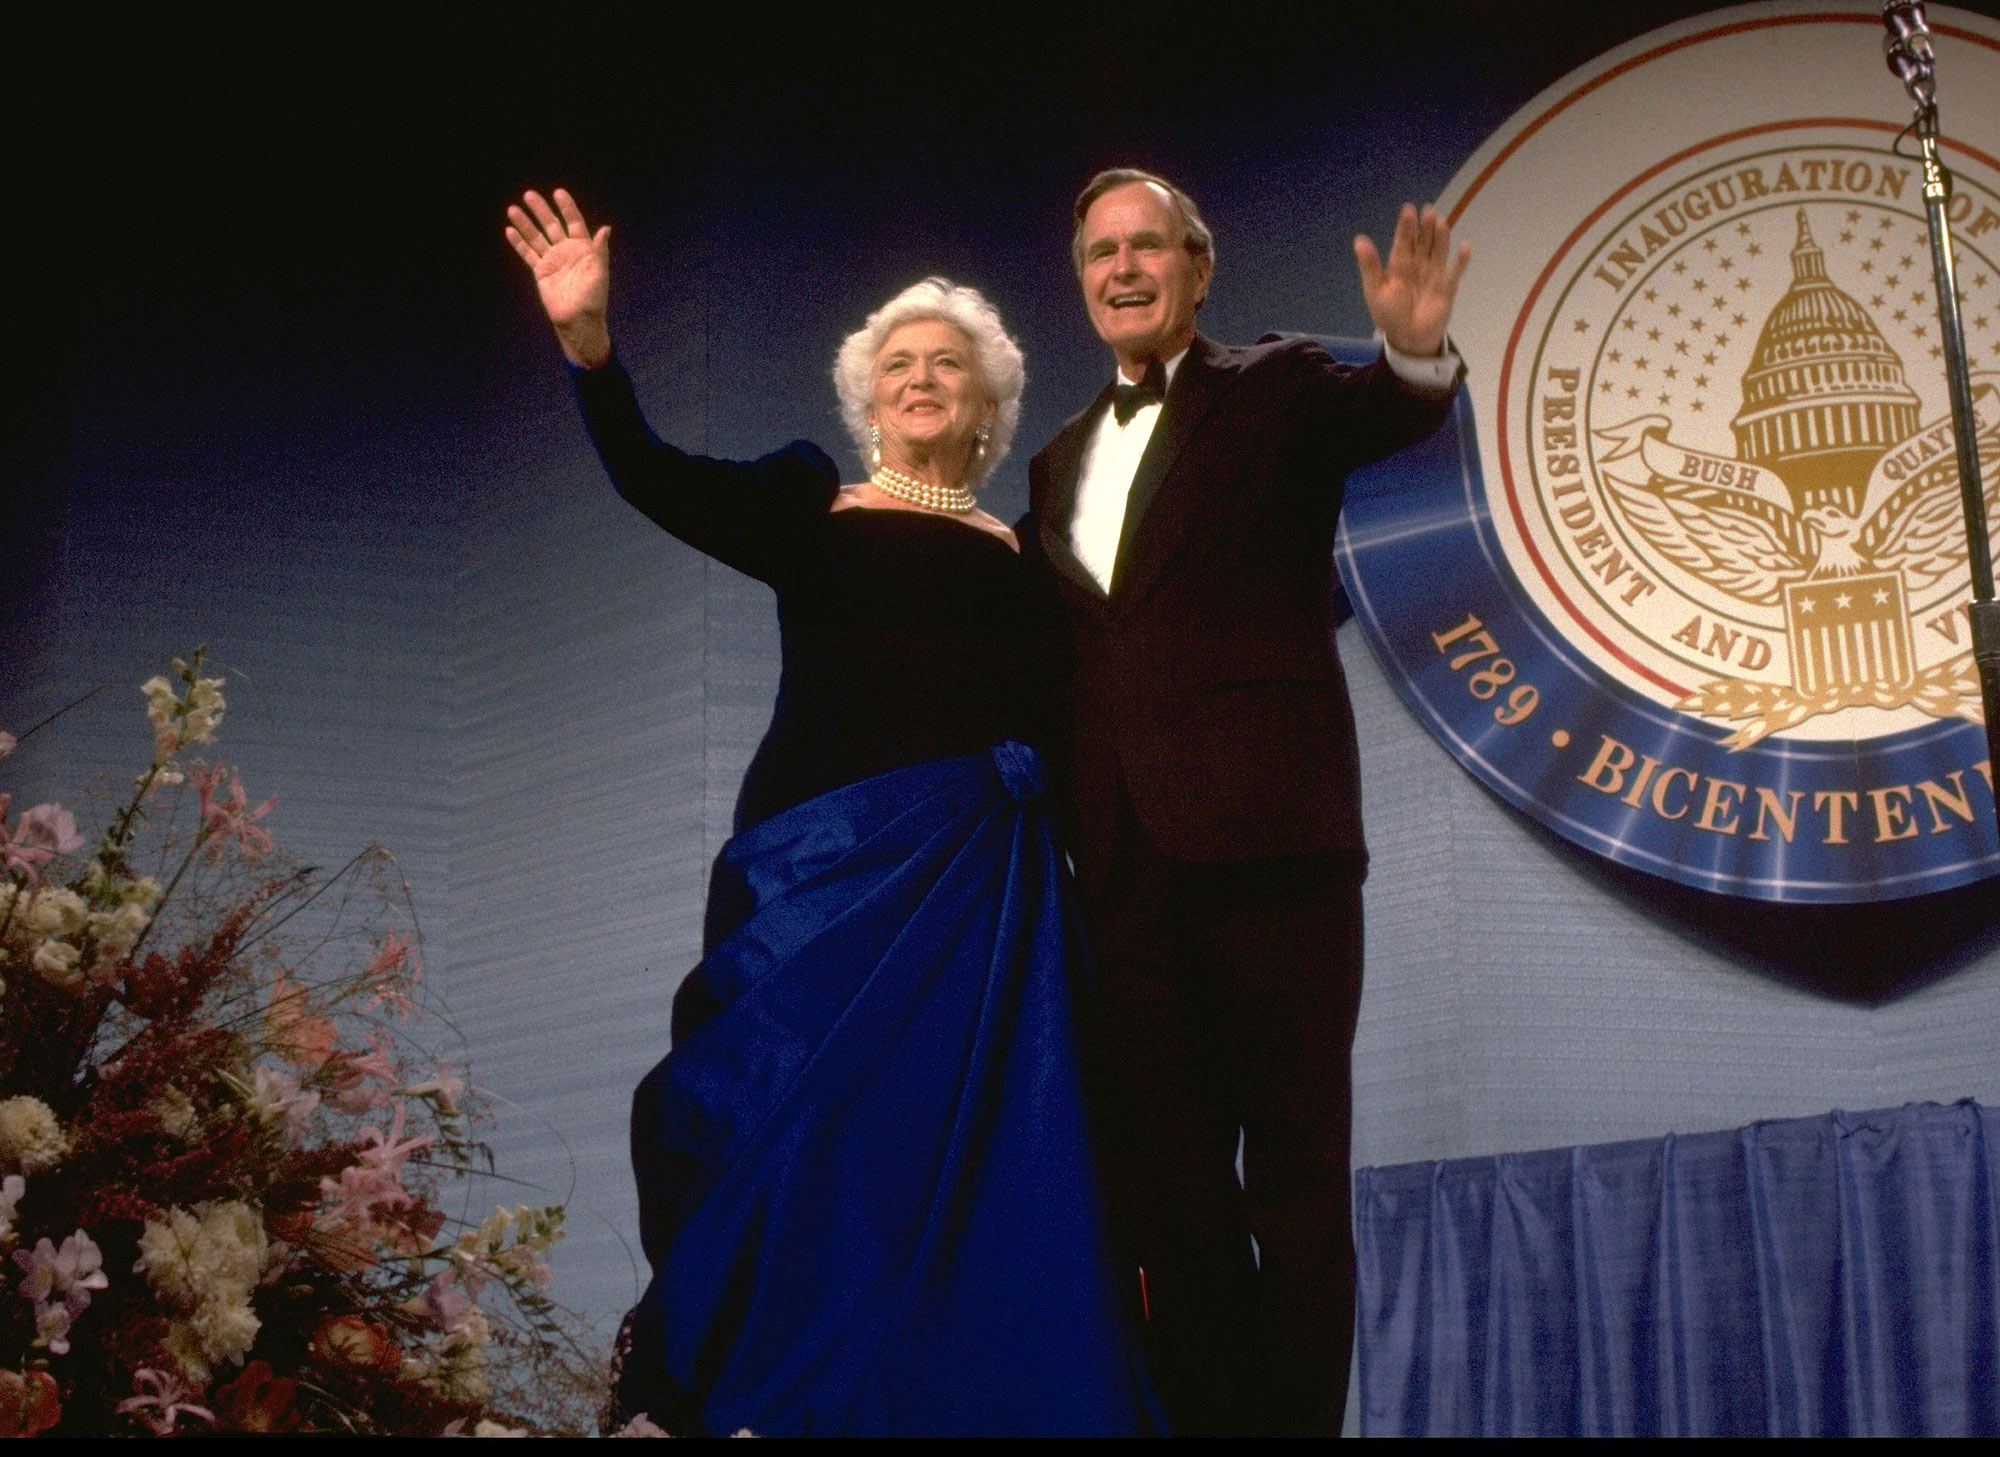 Pres. George & Barbara Bush onstage at inaugural ball greeting wellwishers. (Photo by Diana Walker//Time Life Pictures/Getty Images)